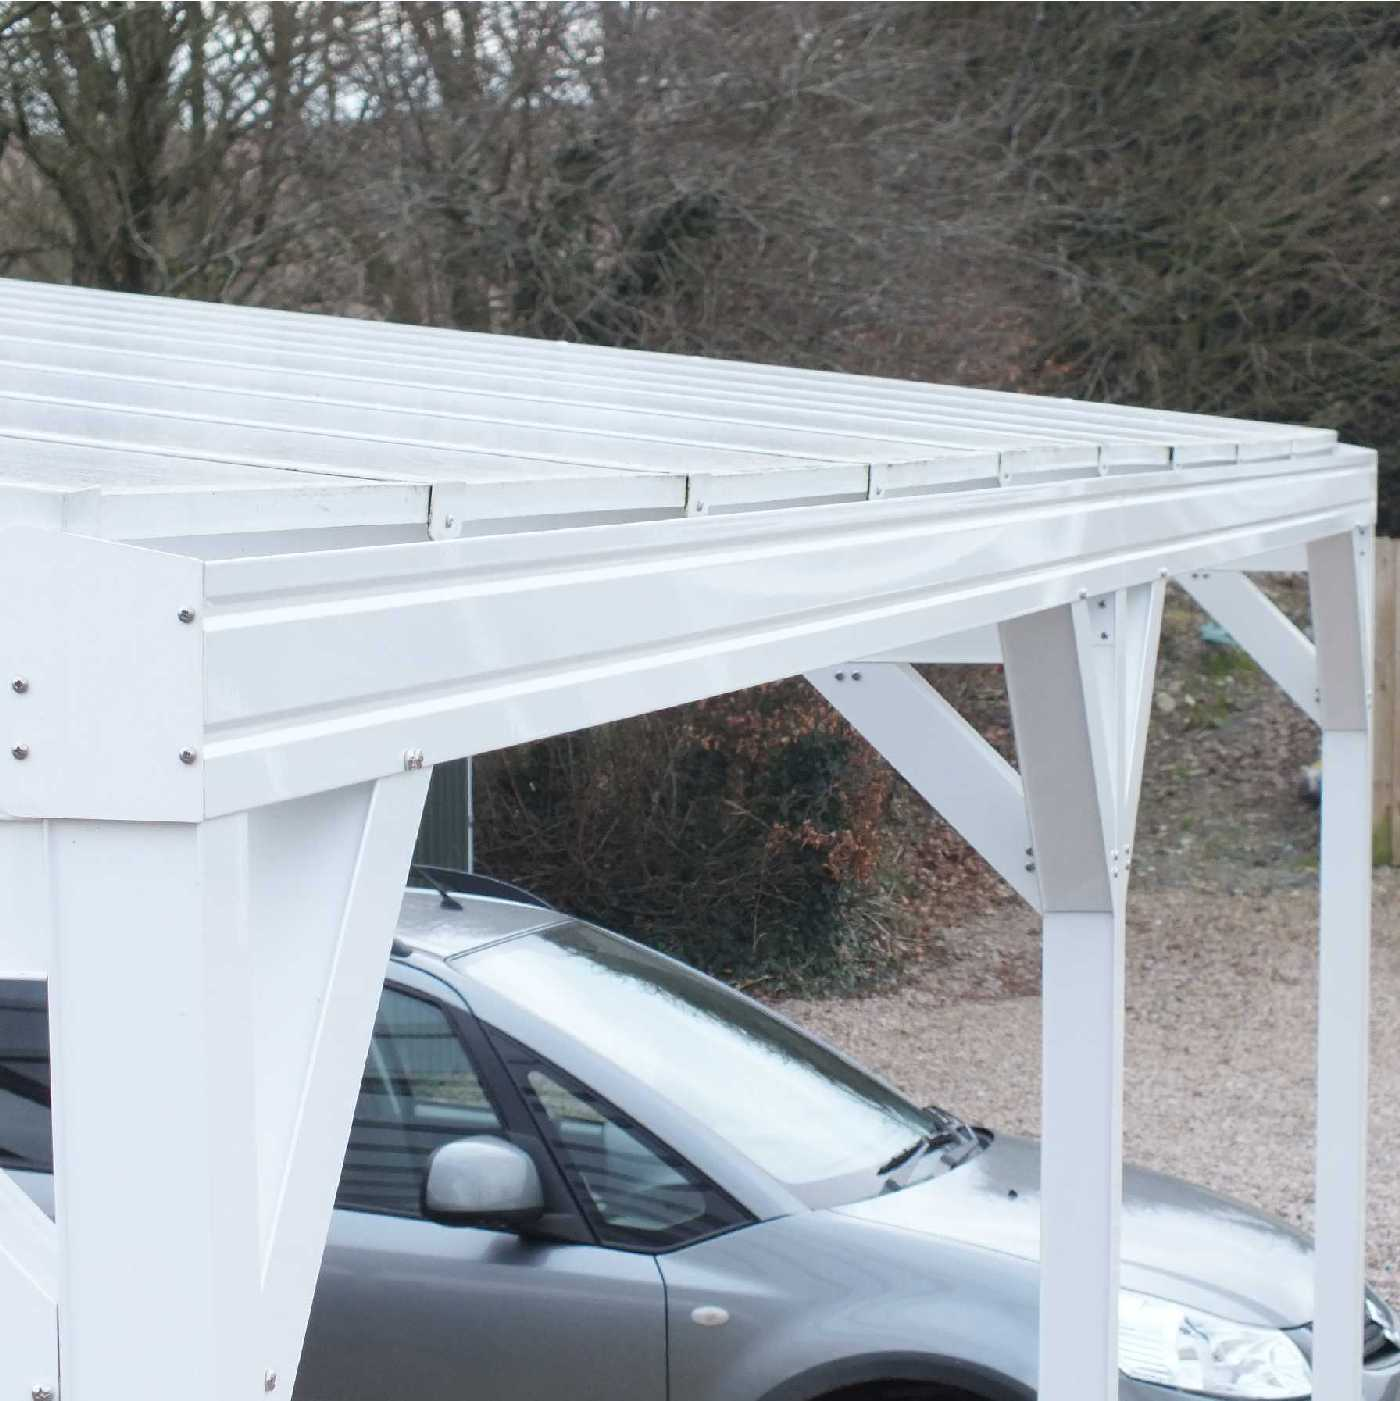 Omega Smart Free-Standing, MonoPitch Roof Canopy with 16mm Polycarbonate Glazing - 4.2m (W) x 2.5m (P), (6) Supporting Posts from Omega Build